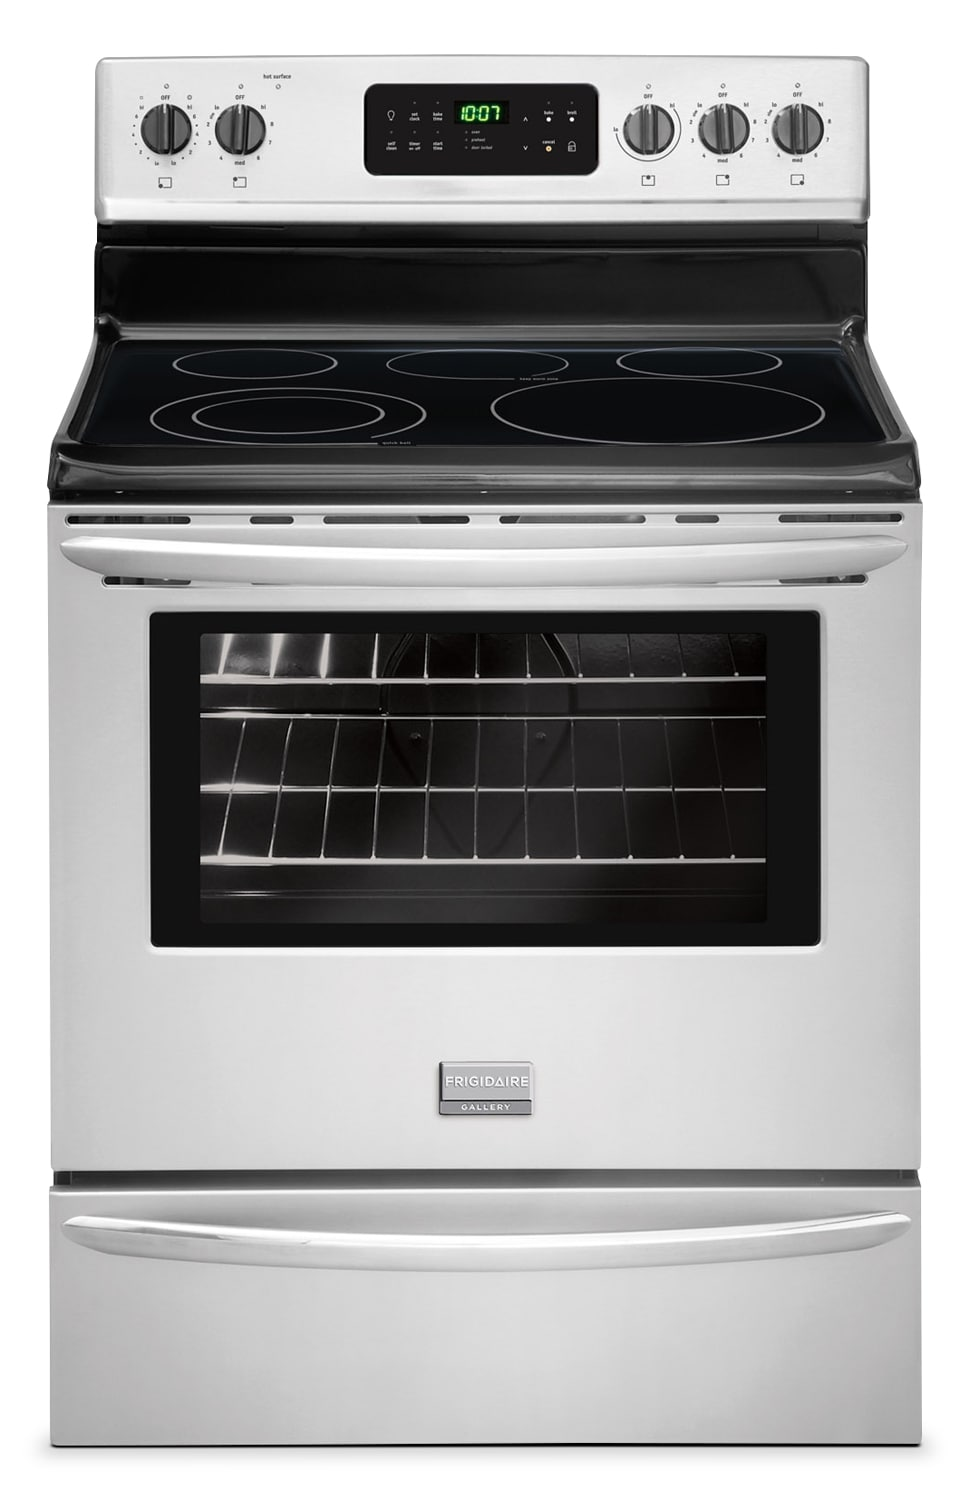 Cooking Products - Frigidaire Gallery Stainless Steel Freestanding Electric Range (5.4 Cu. Ft.) - CGEF3030PF